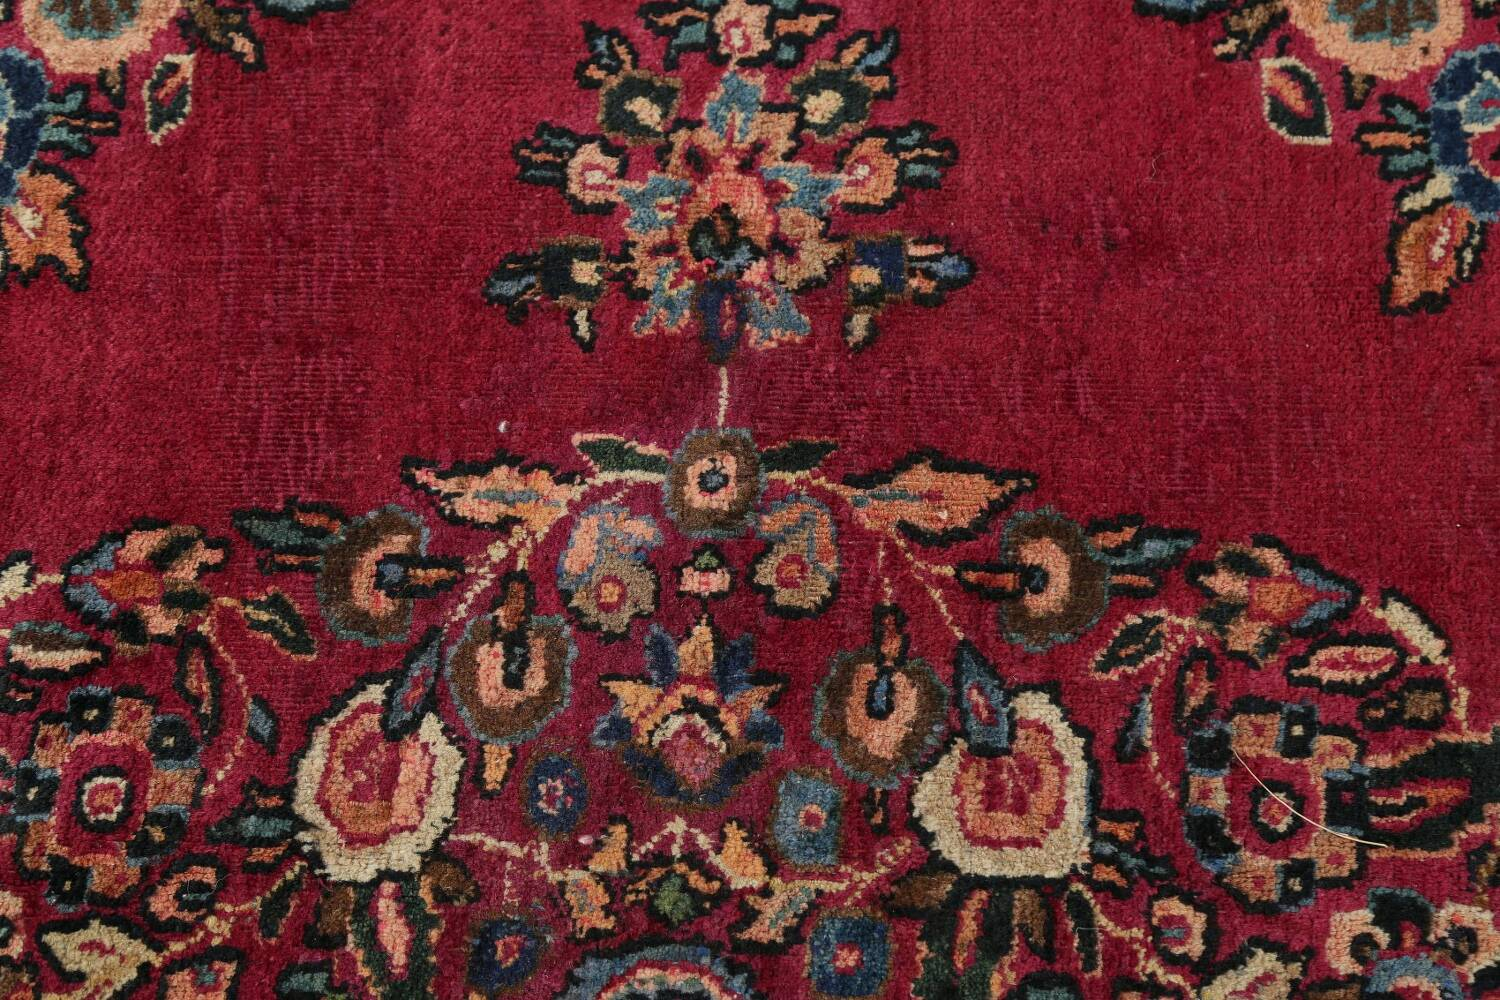 Antique Floral Red Dorokhsh Persian Rug Large 11x14 image 11